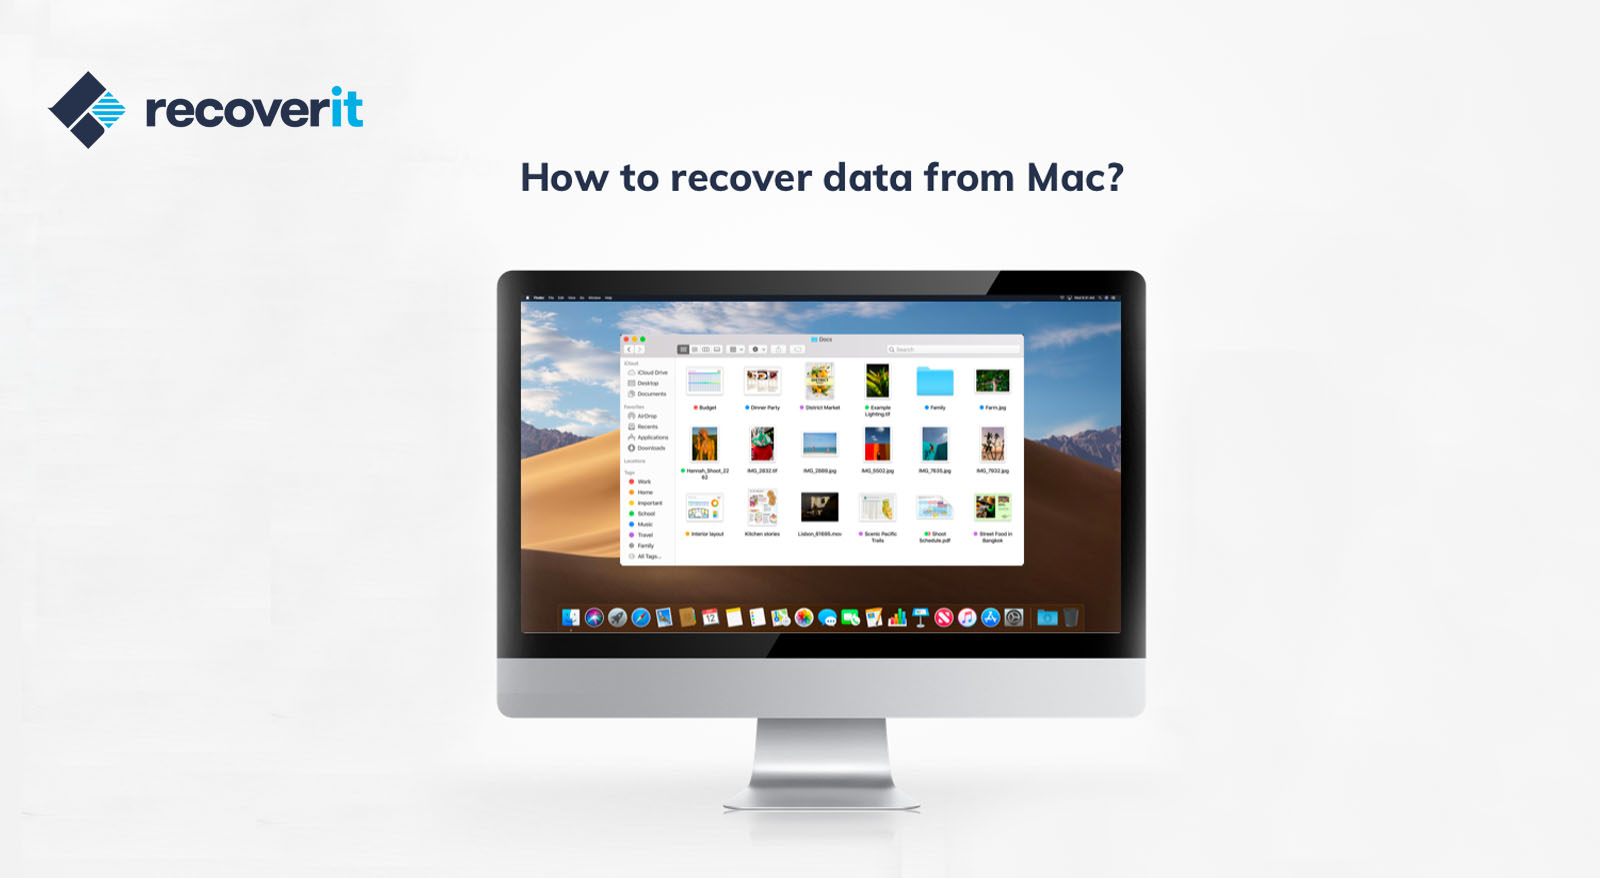 Mac data recovery is easy with Wondershares Recoverit.